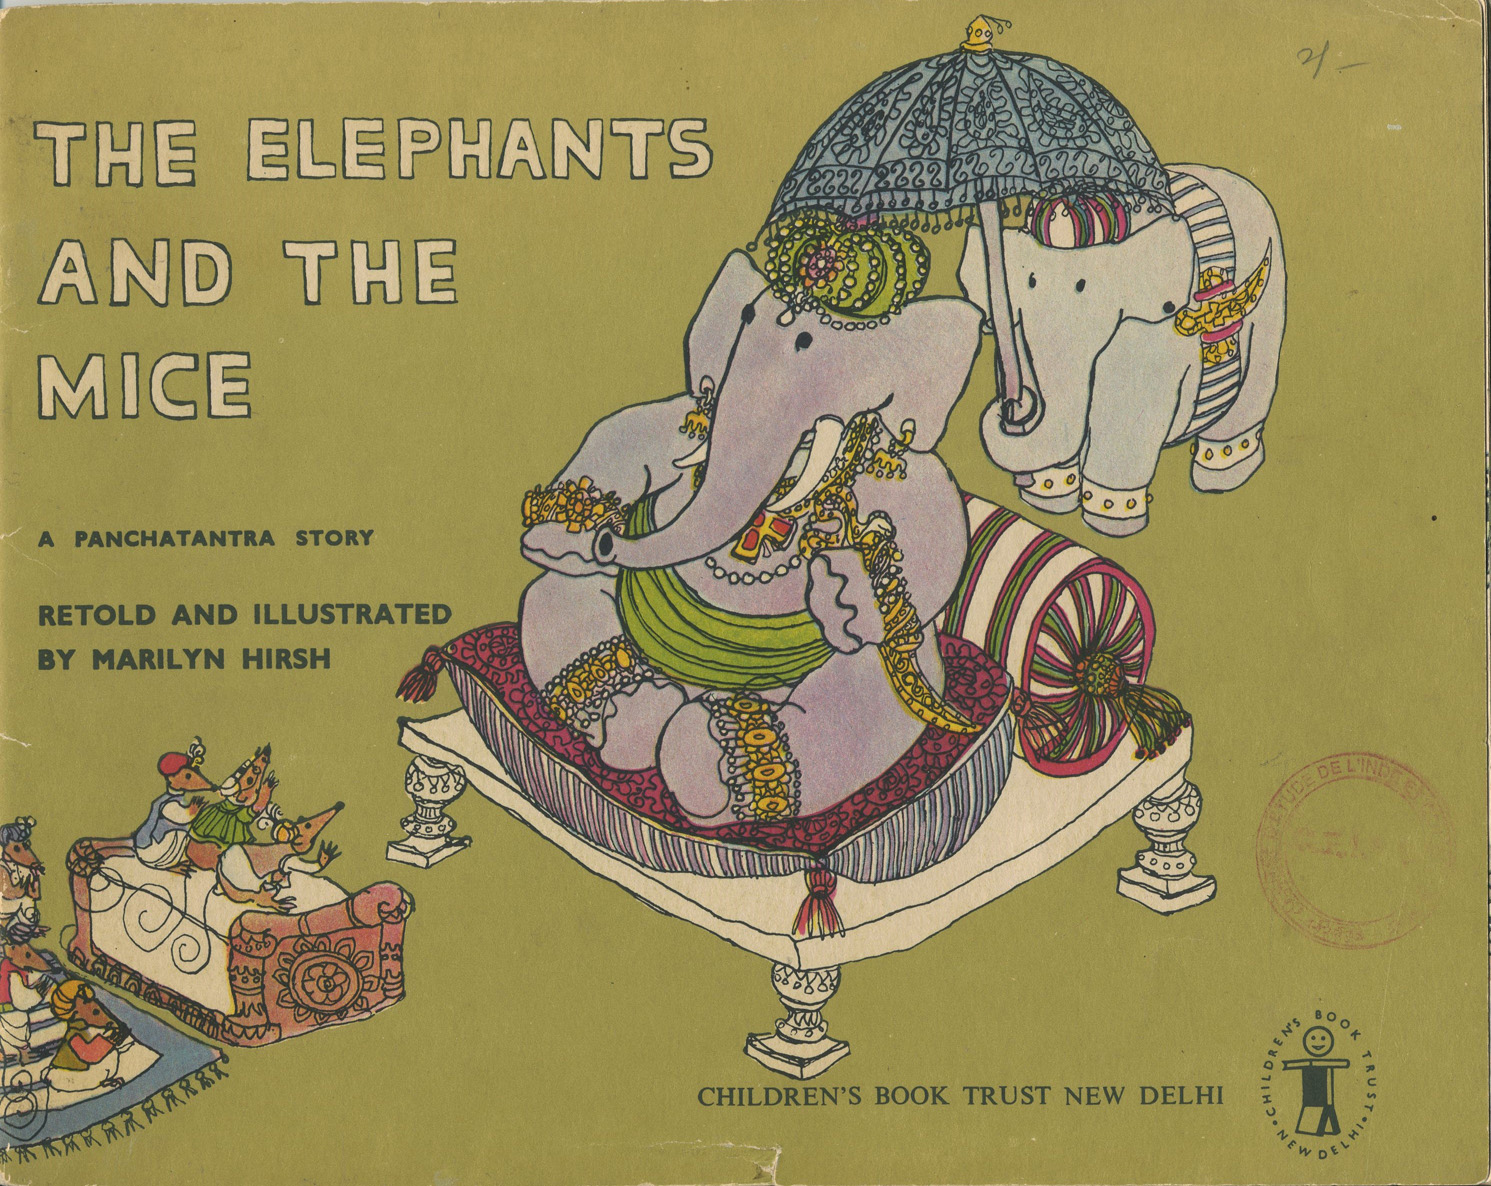 The elephants and the mice